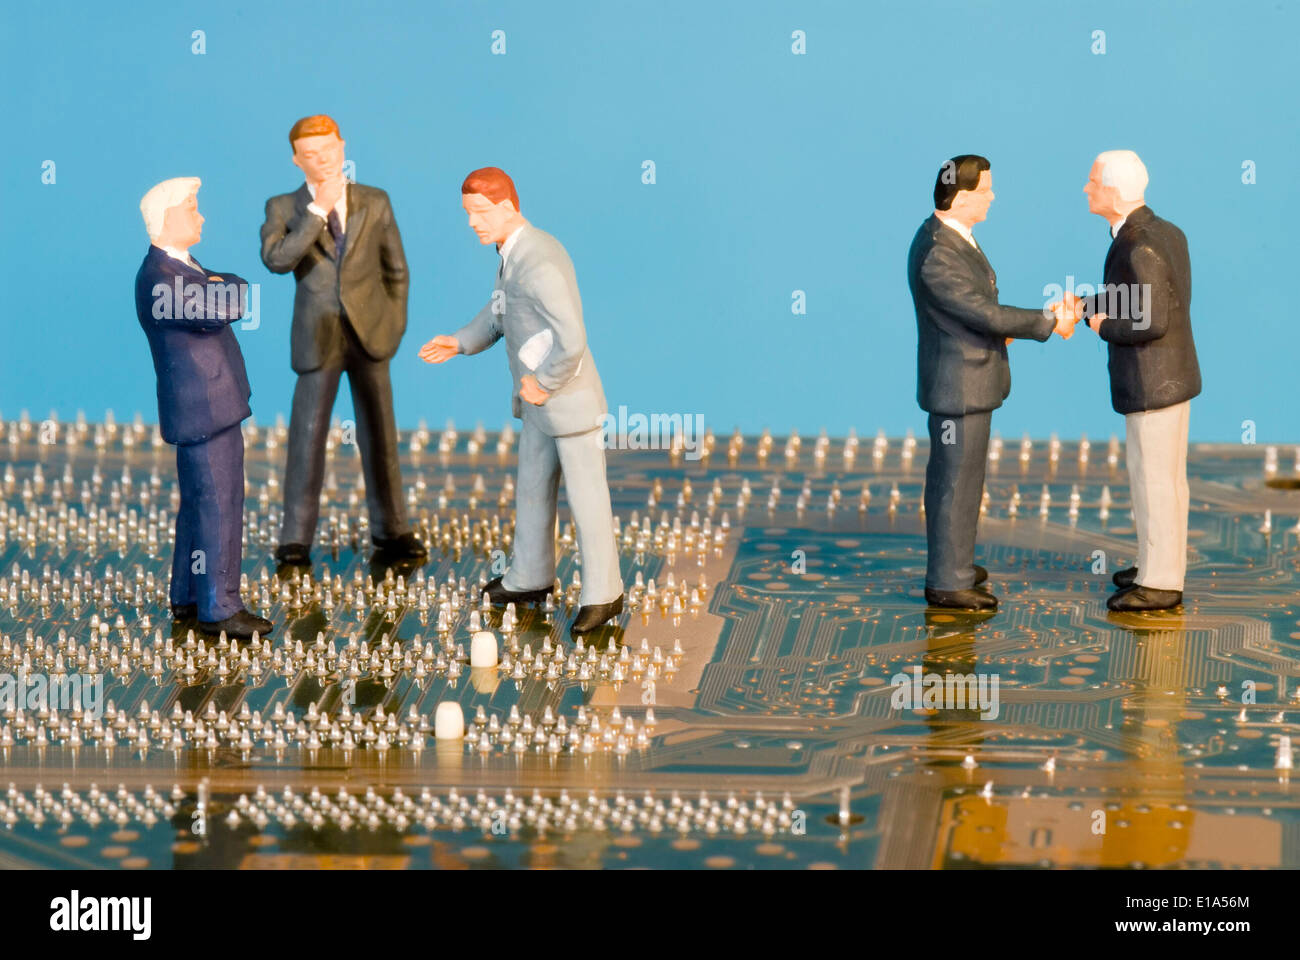 Concept image showing businessmen on a computer chip - Stock Image